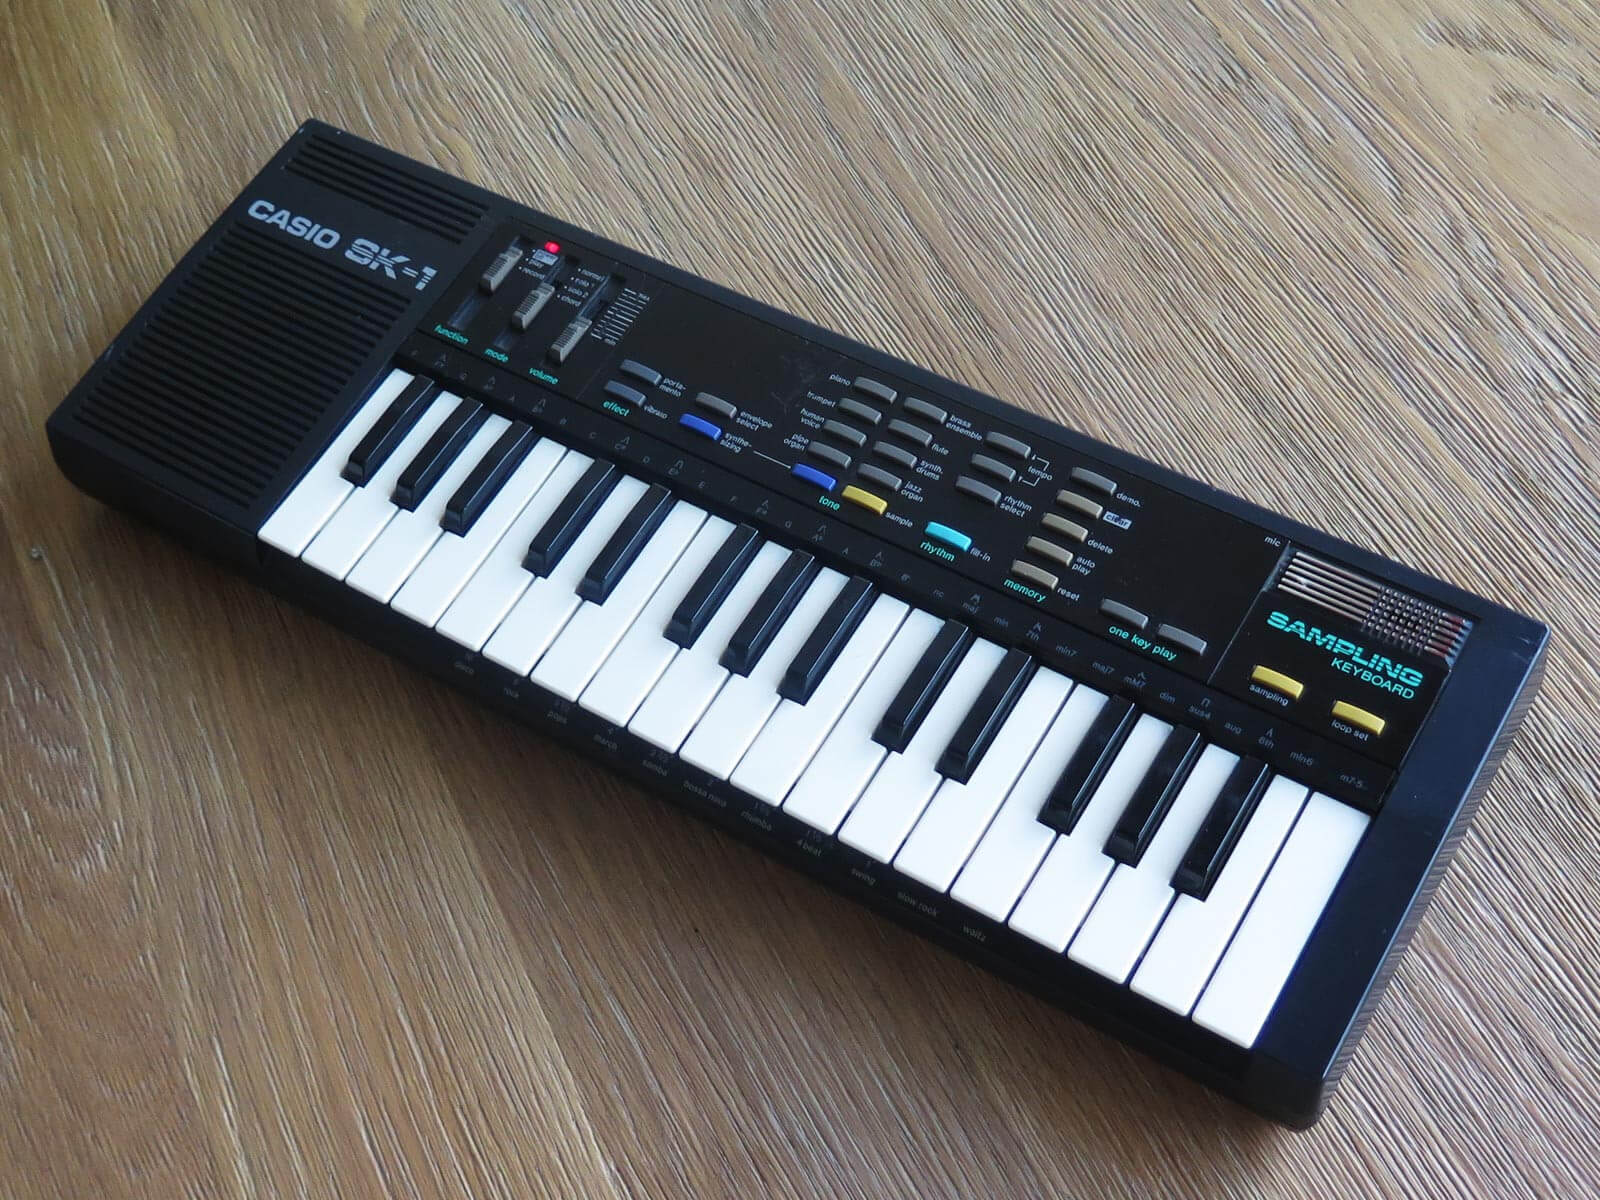 SK1 From Mars sample pack offers sounds of the Casio SK-1